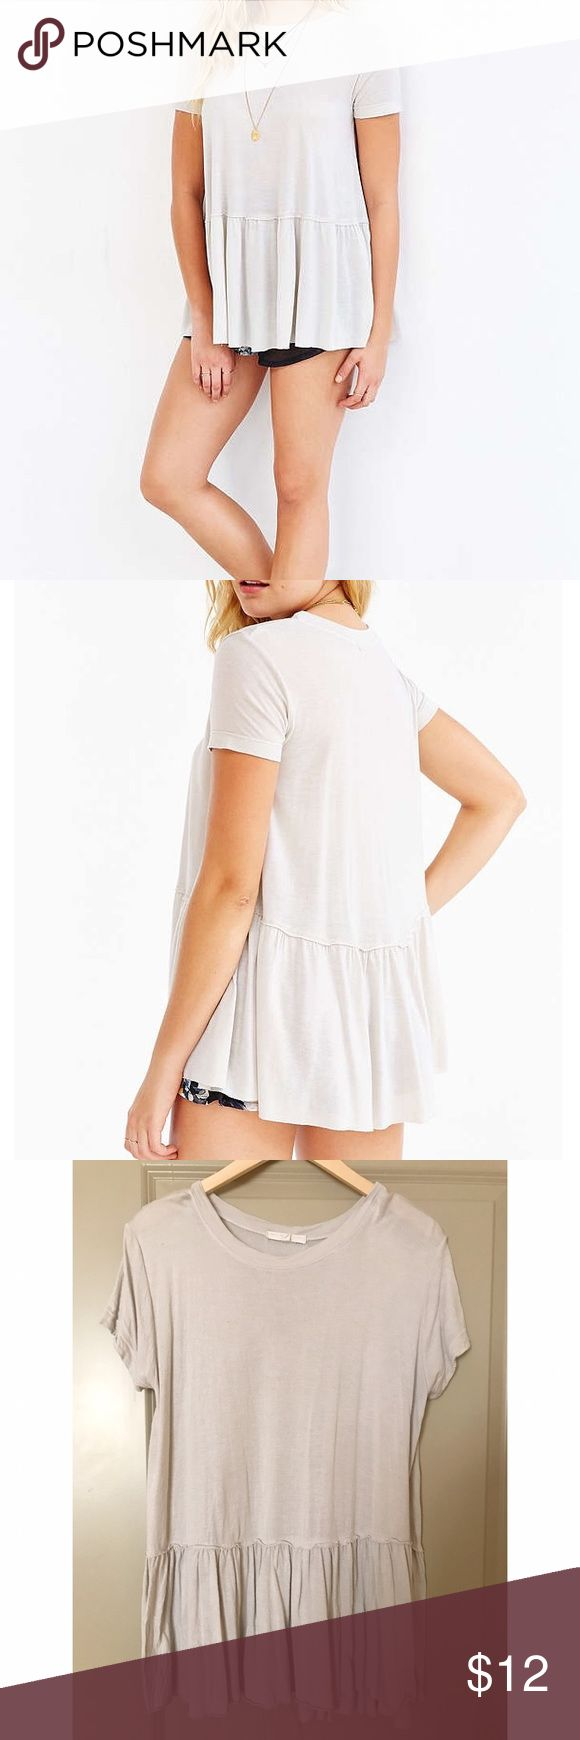 Urban Outfitters Raw-Edge Peplum Top Truly Madly Deeply from Urban Outfitters, Raw-cut Short Sleeve peplum top in Ivory. Darker in color than stock photos, more of a cream color. Urban Outfitters Tops Tees - Short Sleeve